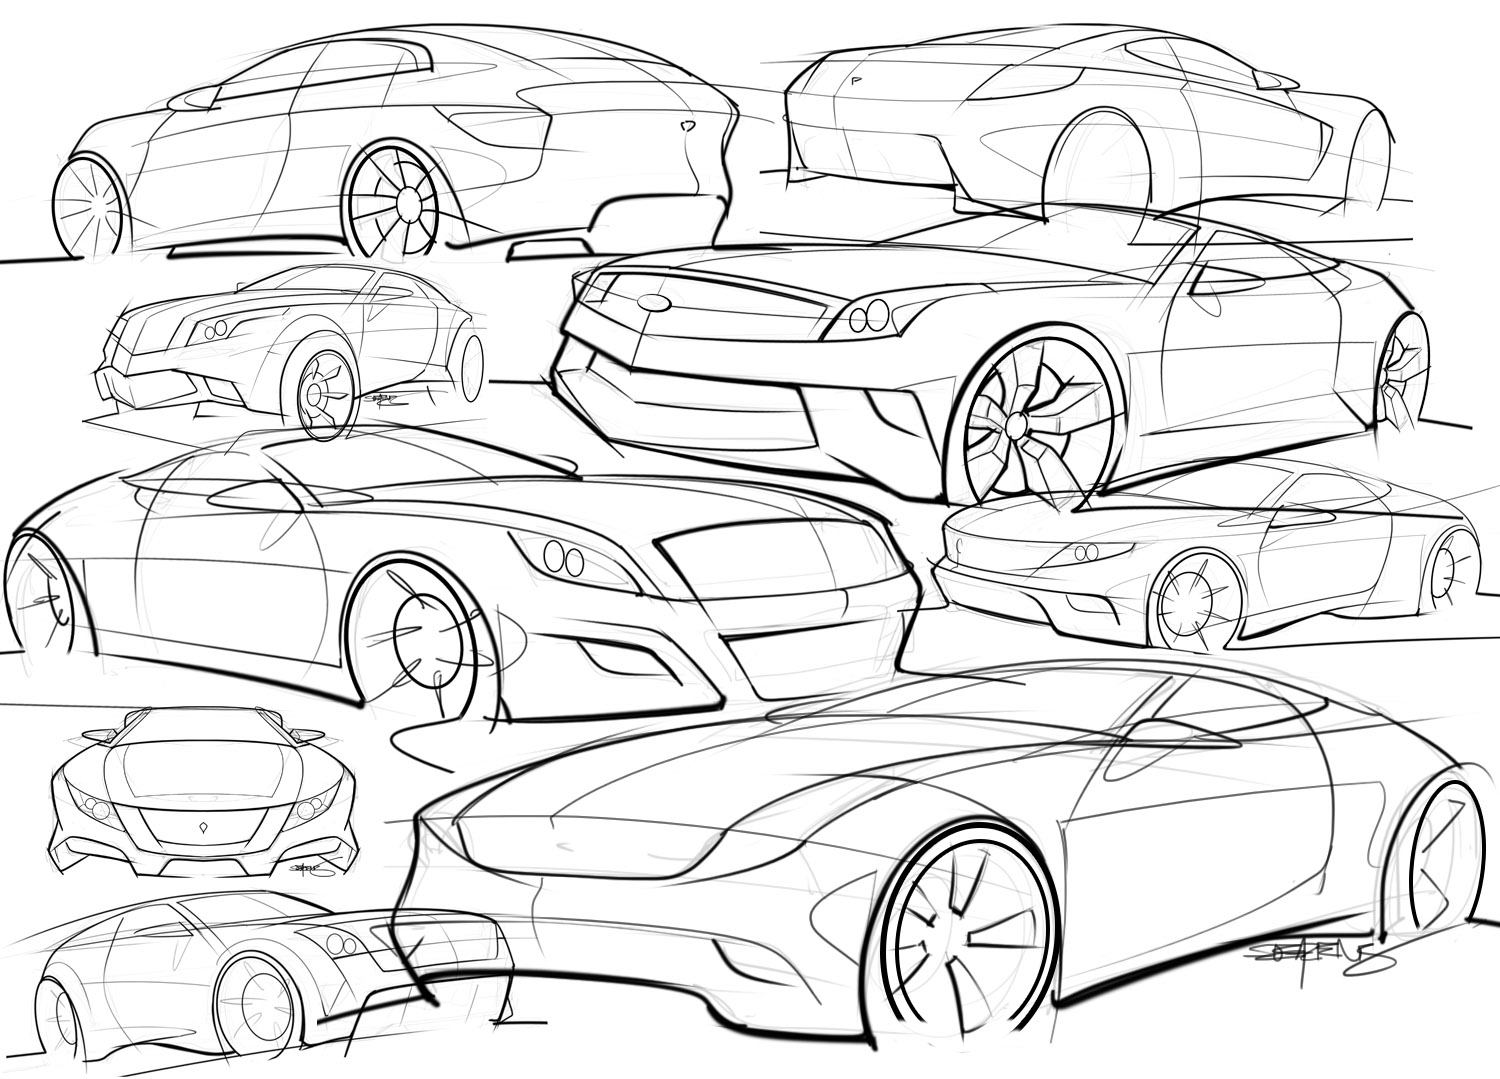 1500x1079 Some Of My Car Sketches From The Last Few Months Scottdesigner